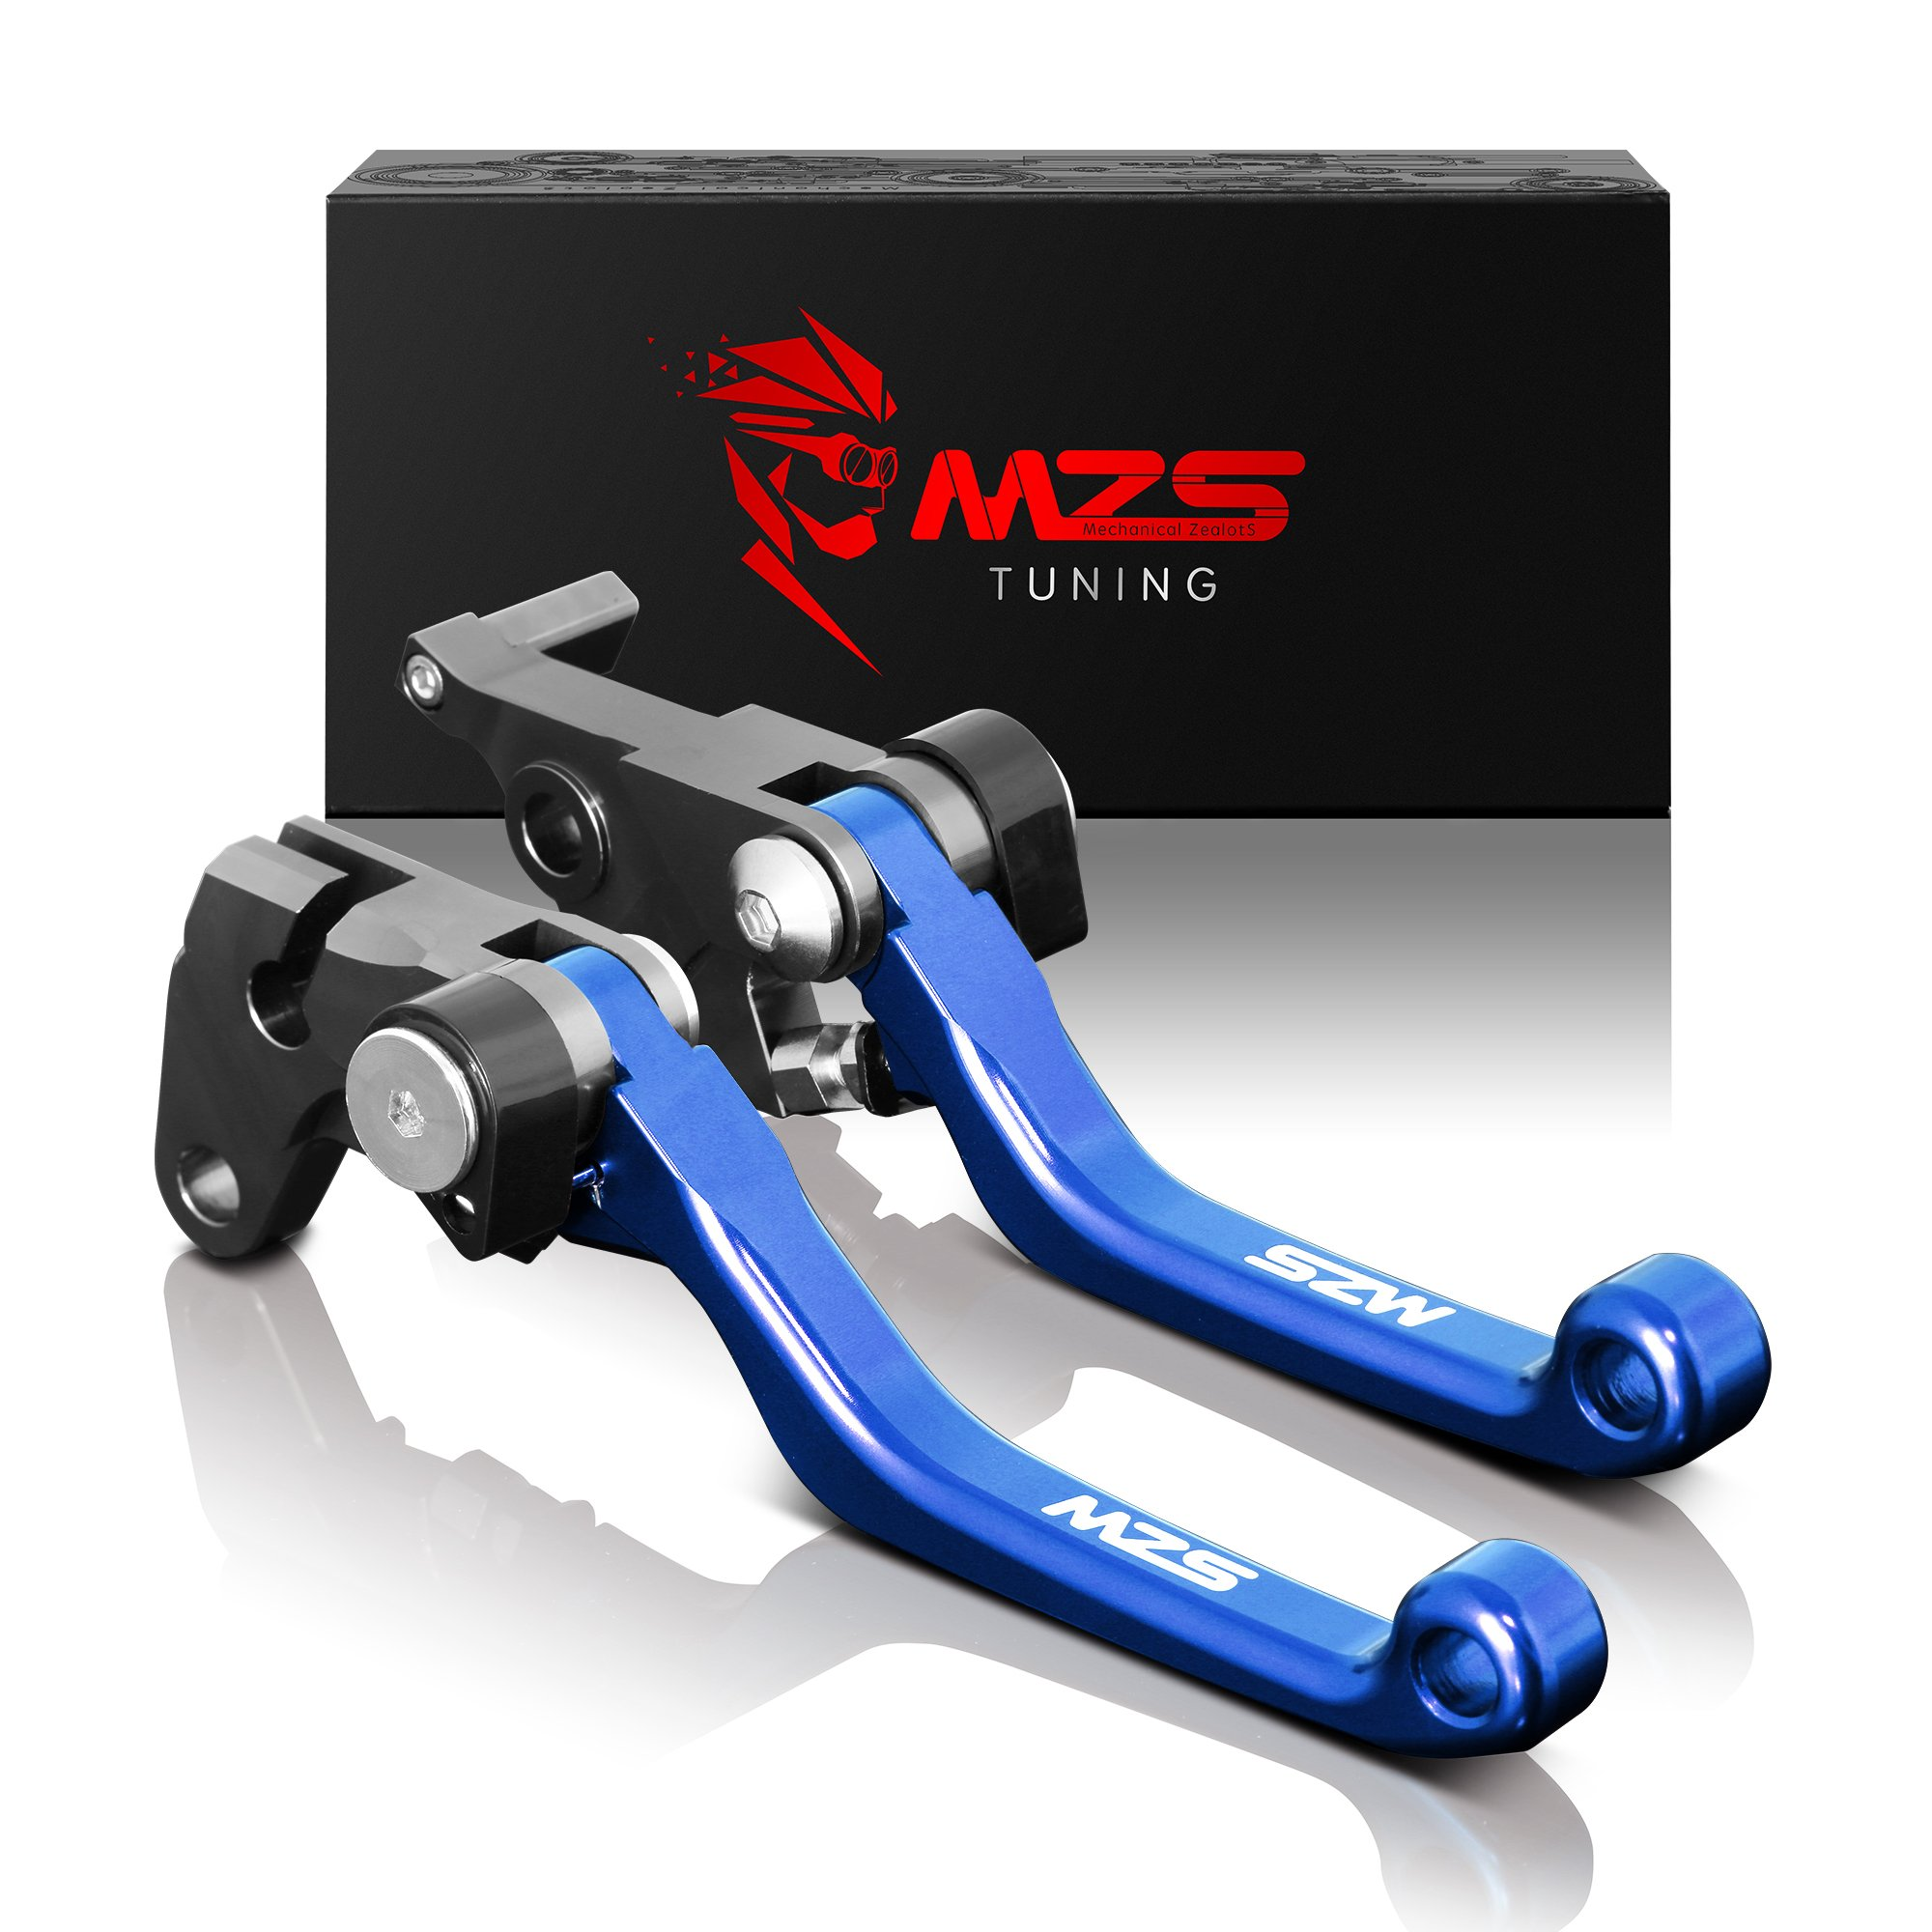 MZS CNC Pivot Brake Clutch Levers for Yamaha WR250F 2017-2018/ WR450F 2016-2018 (Blue)